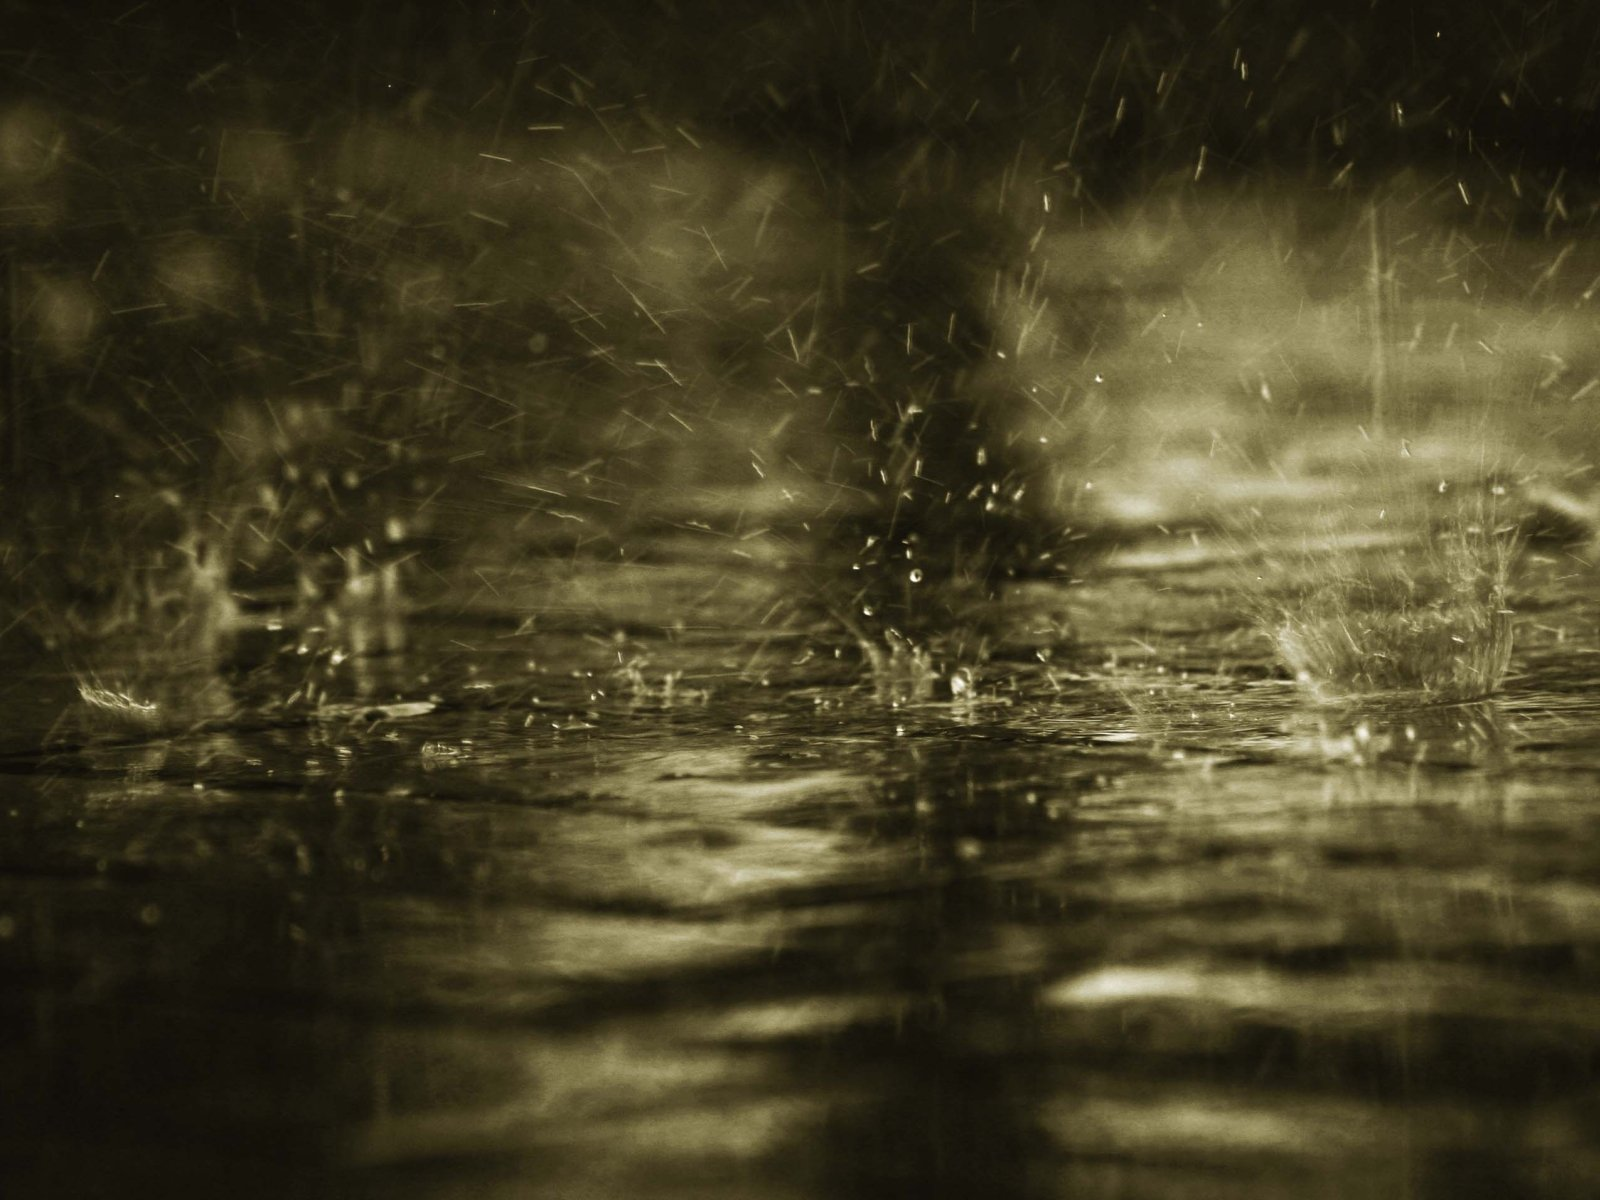 Wallpapers Rain Wallpapers Love Wallpapers Alone